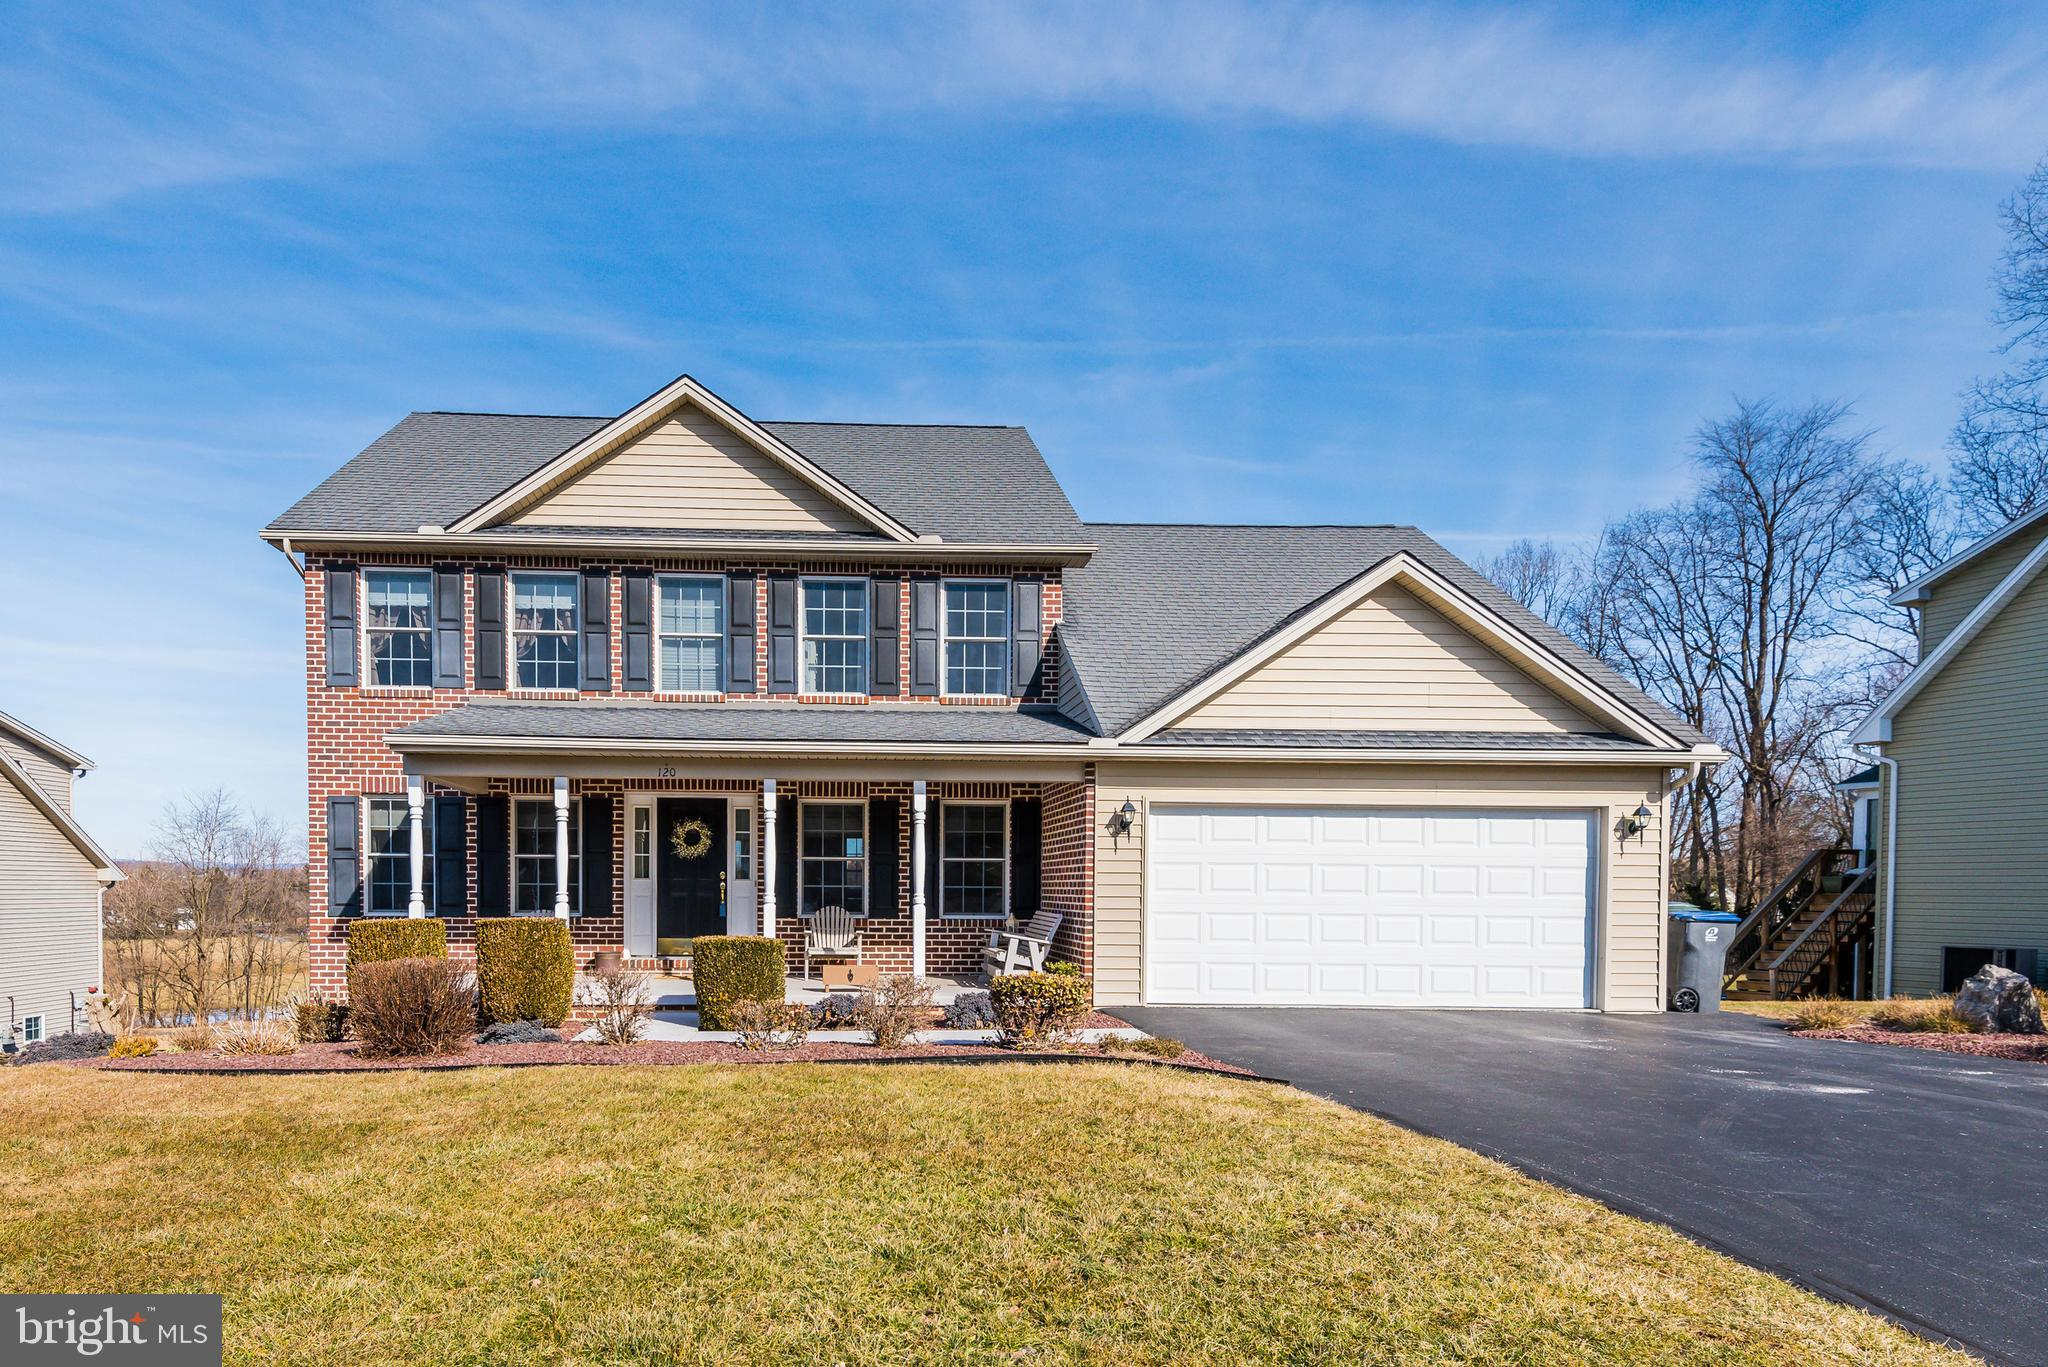 120 SUNSET DRIVE, MOUNT HOLLY SPRINGS, PA 17065